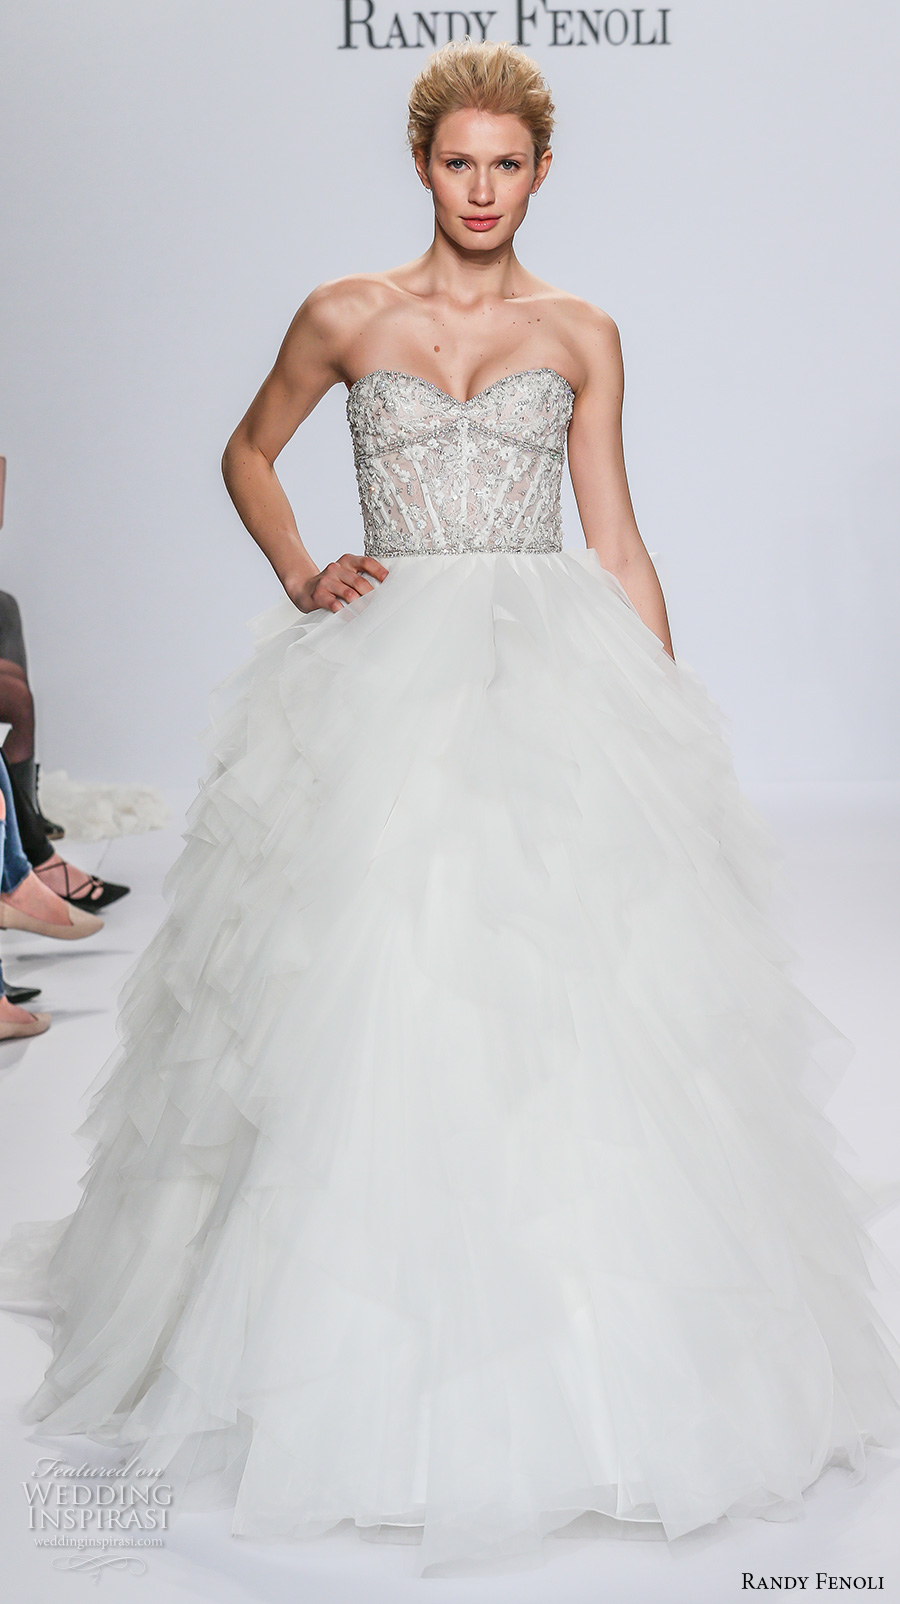 randy fenoli spring 2018 bridal strapless sweetheart neckline heavily embellished bodice ruffled skirt princess ball gown wedding dress chapel train (04) mv